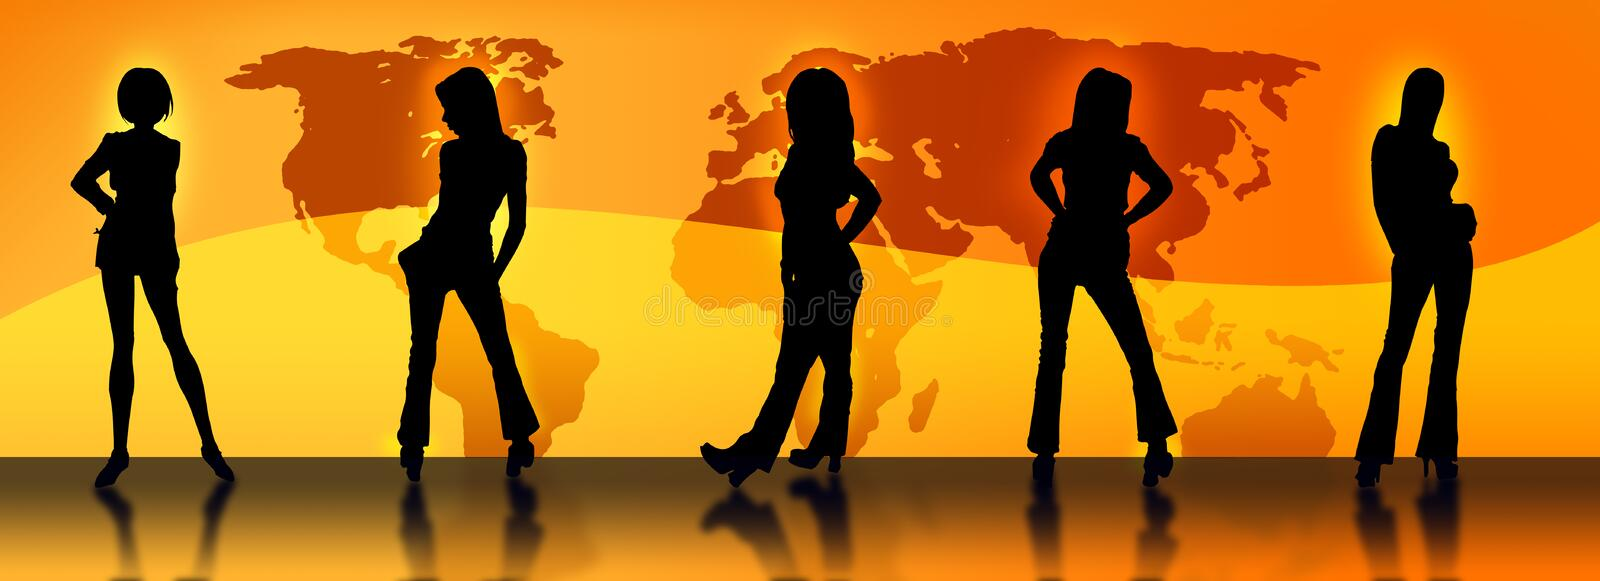 Female silhouettes and a map